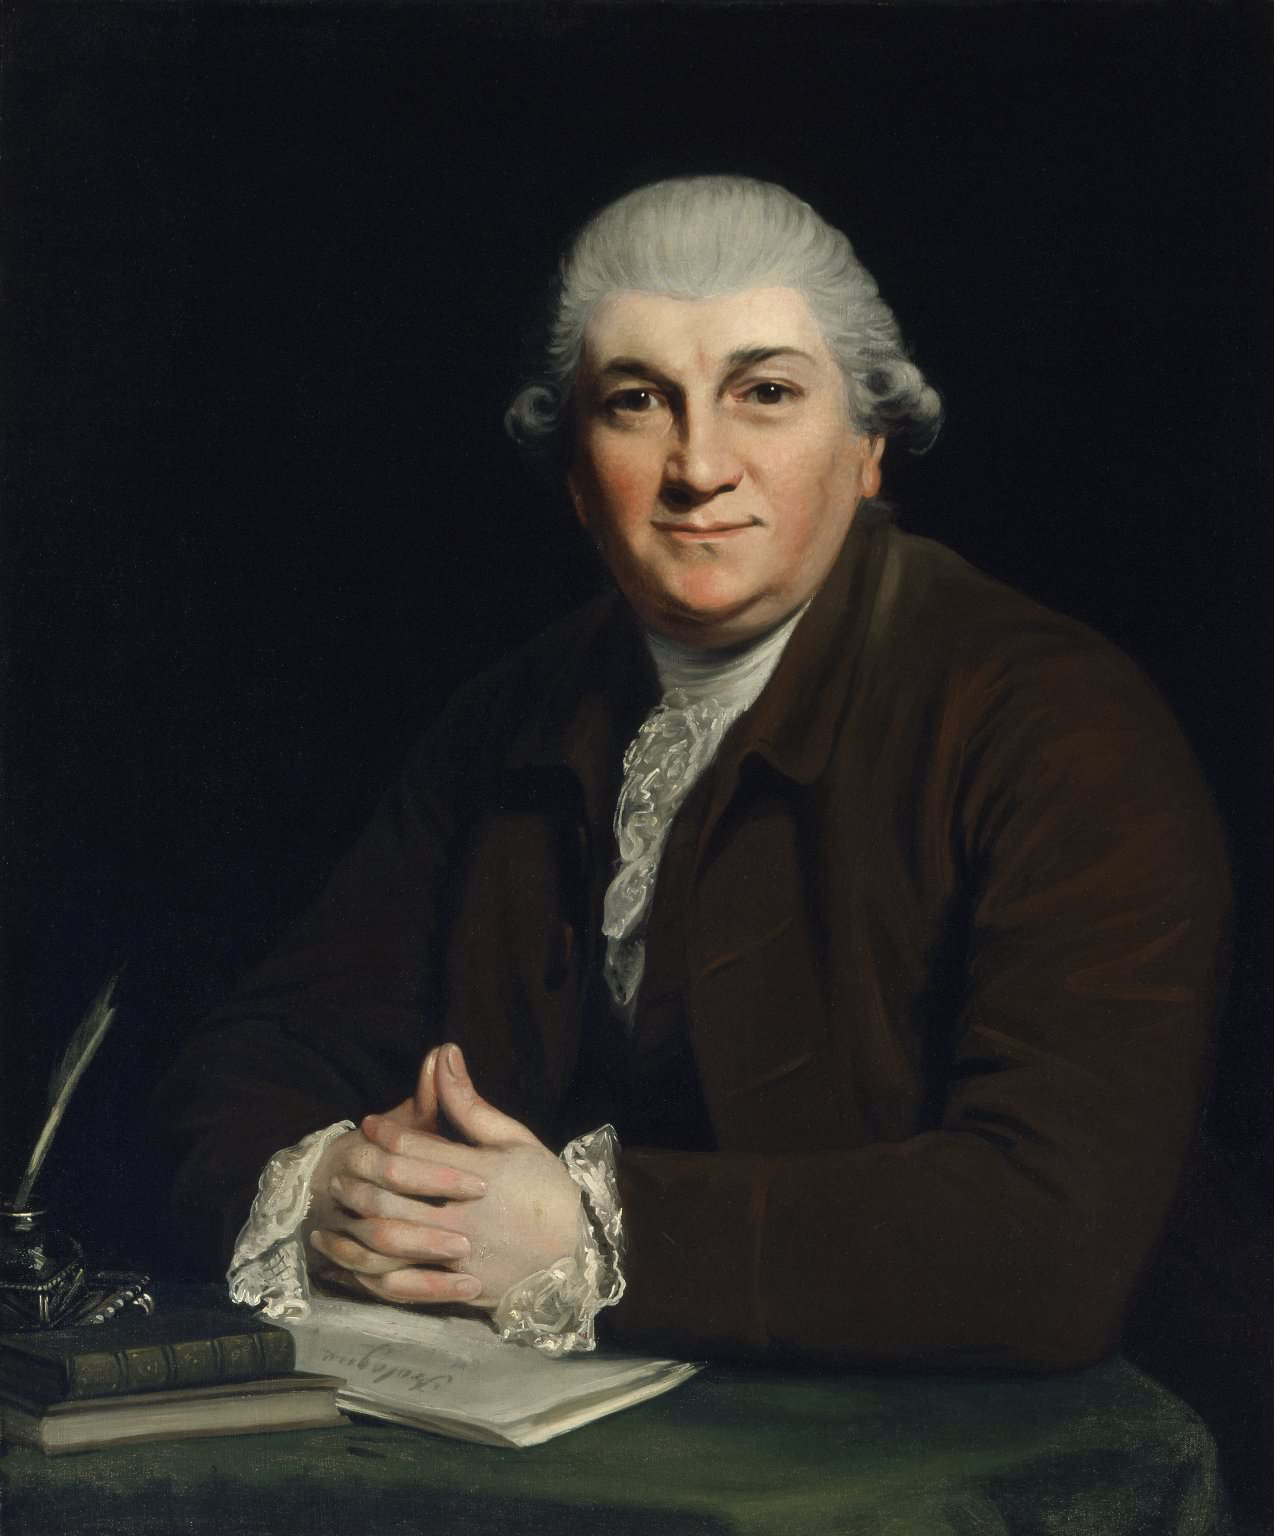 David Garrick by Joshua Reynolds in 1760 or 1761